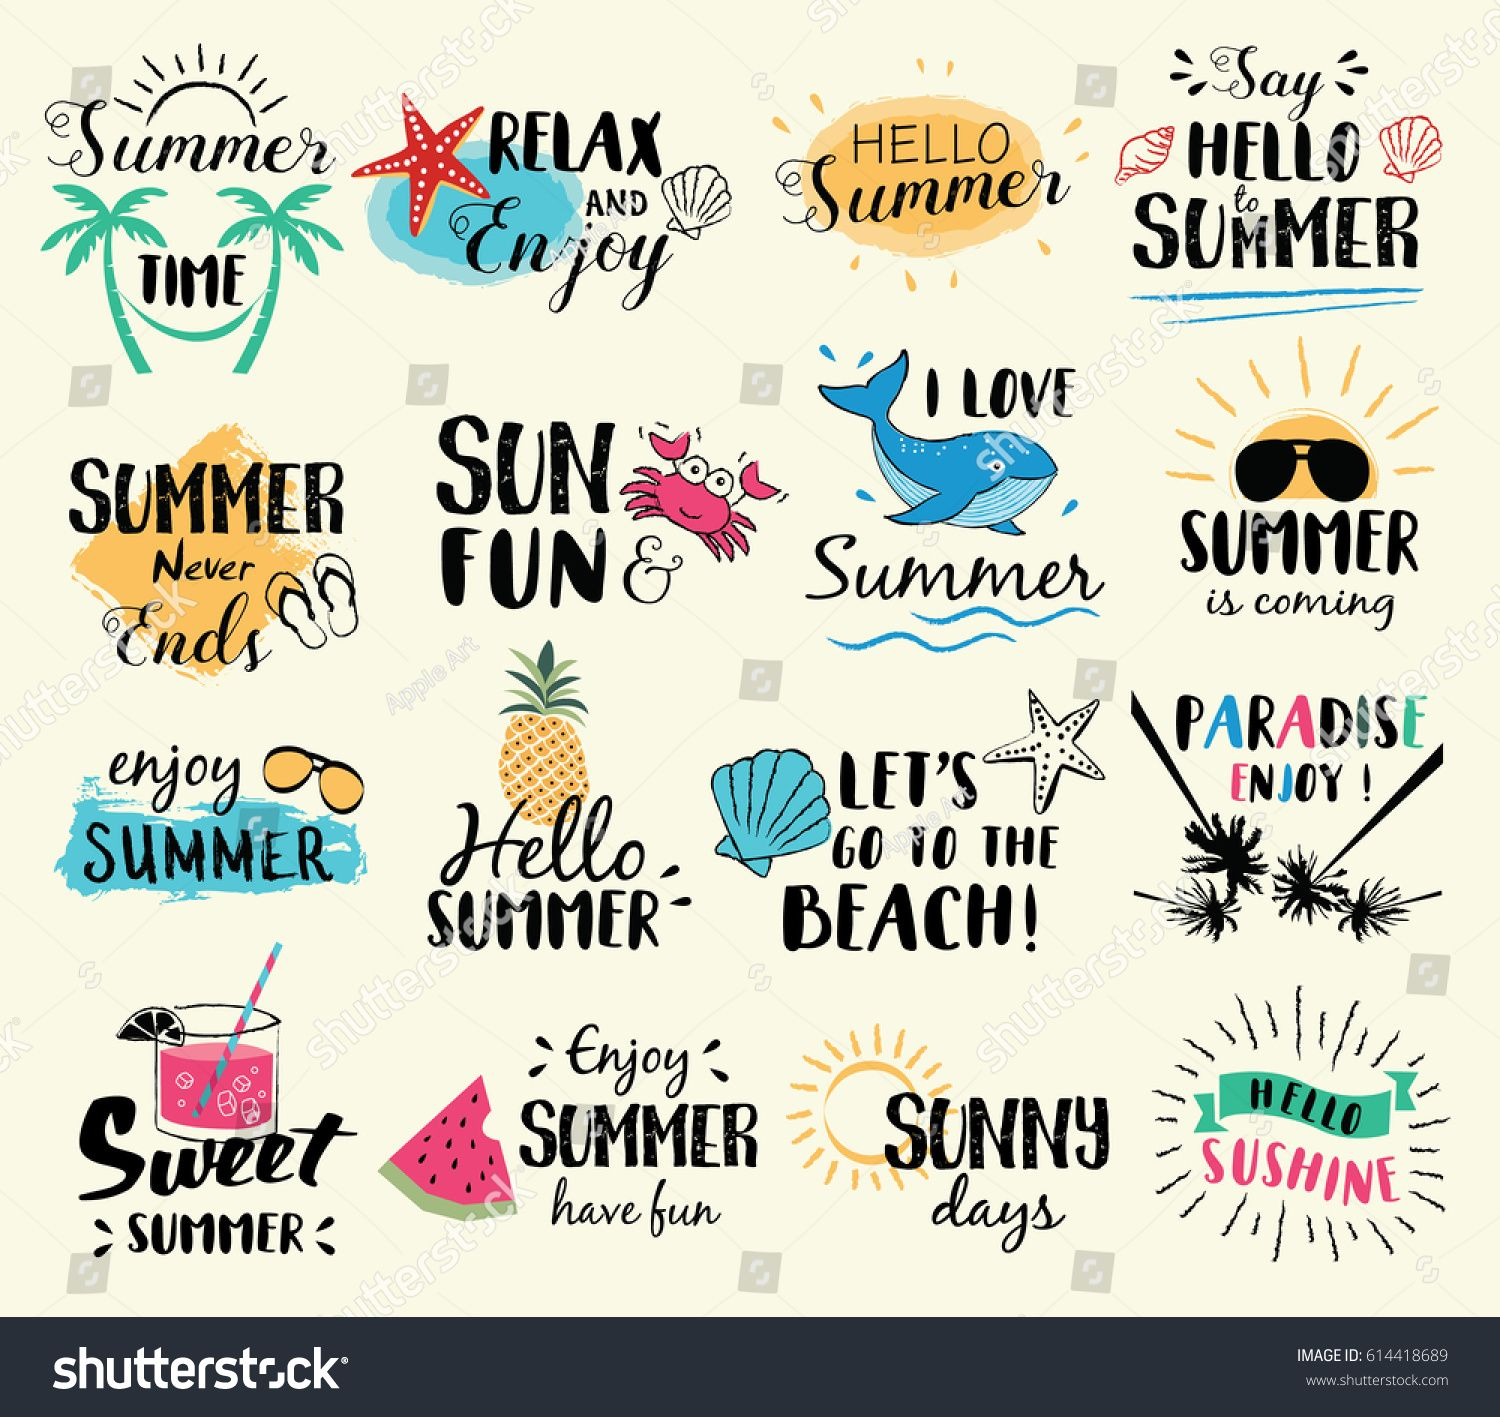 Summer labels, logos, hand drawn tags and elements set for